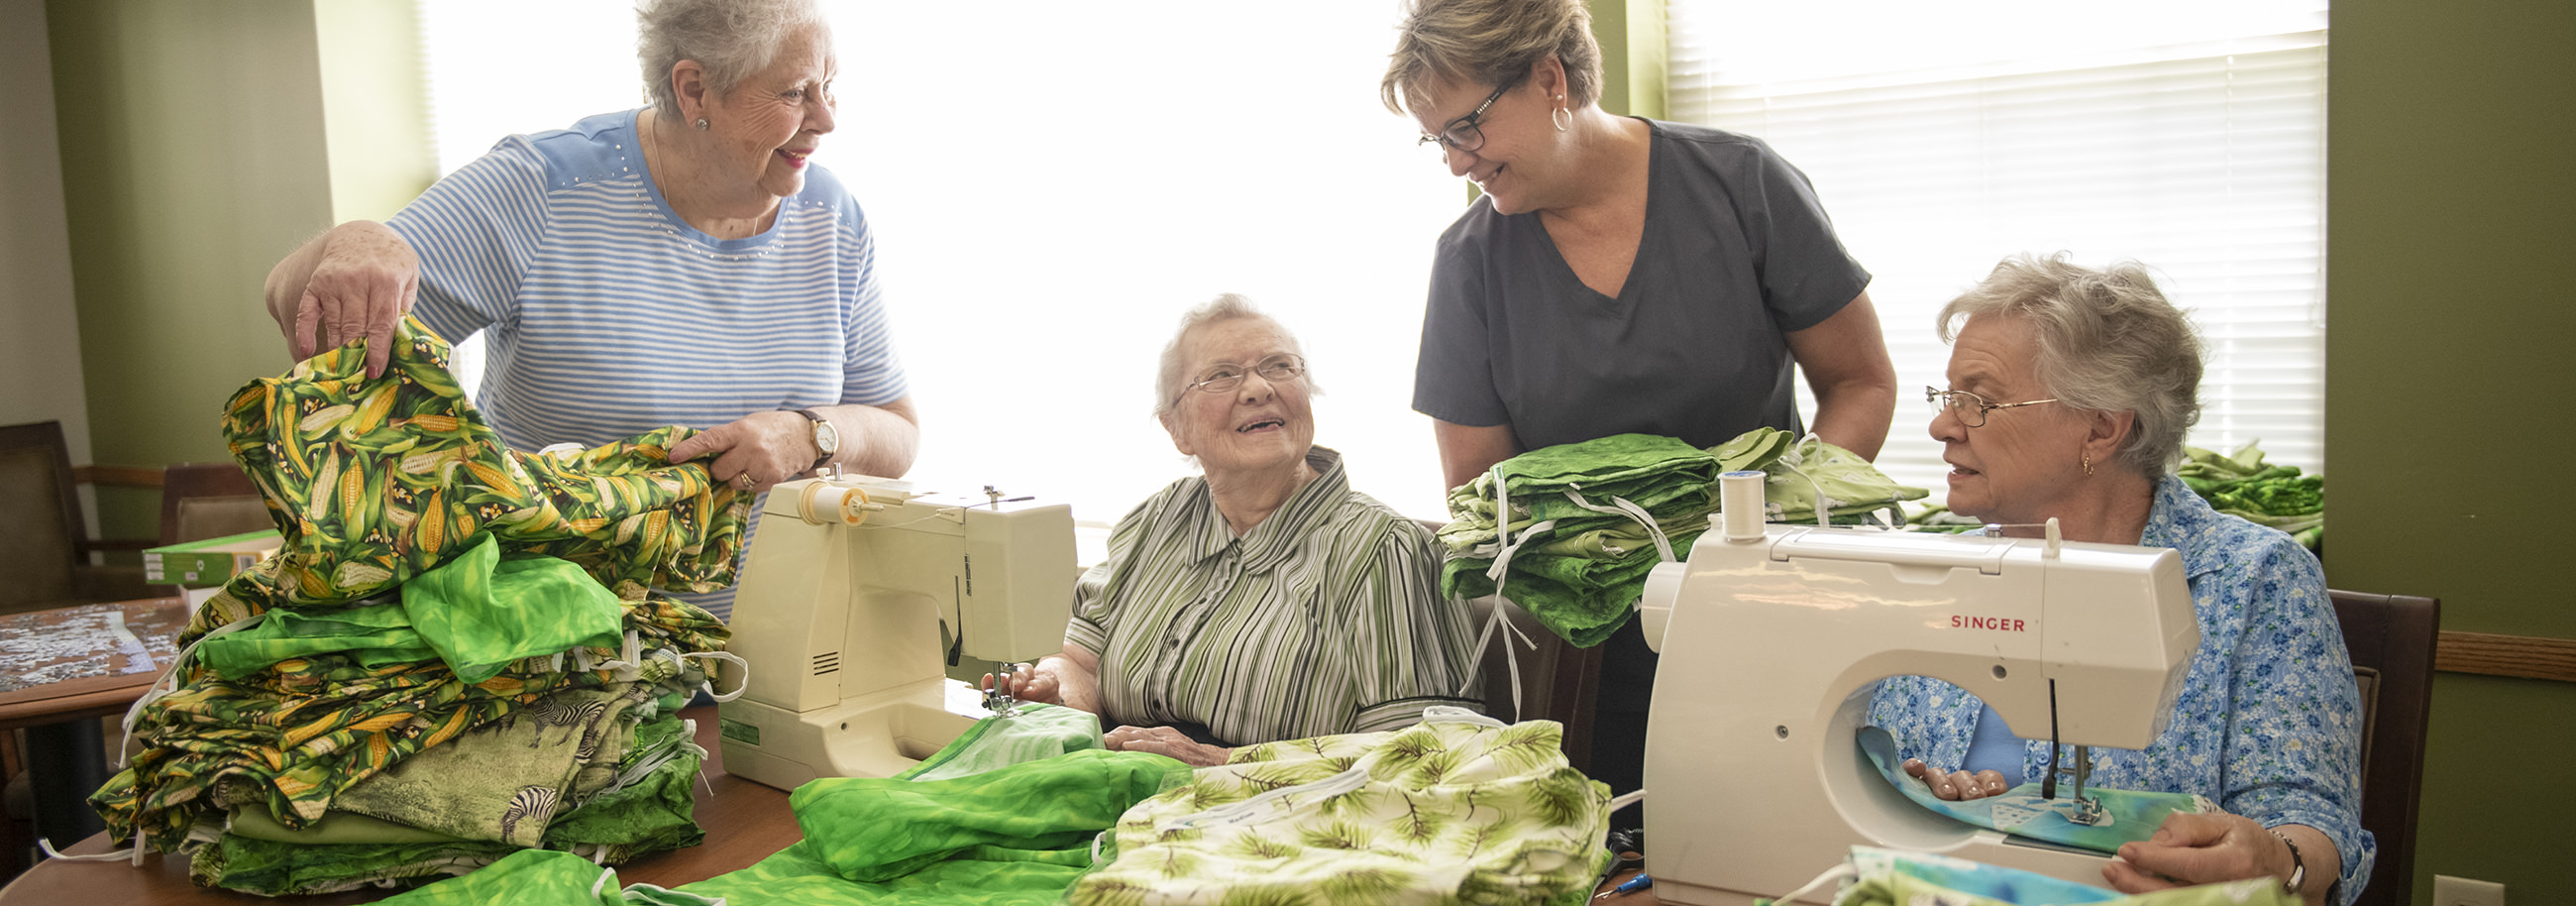 Garden Spot Village residents sewed 96 sets of pajamas, which will be hand-carried to Kenya by staff and residents on the Travel with Purpose trip to Kijabe, Kenya in late September 2019. Pictured, left to right: Nancy Buckles, Mabel Kurtz, Janie Martin, Sarah Brown.